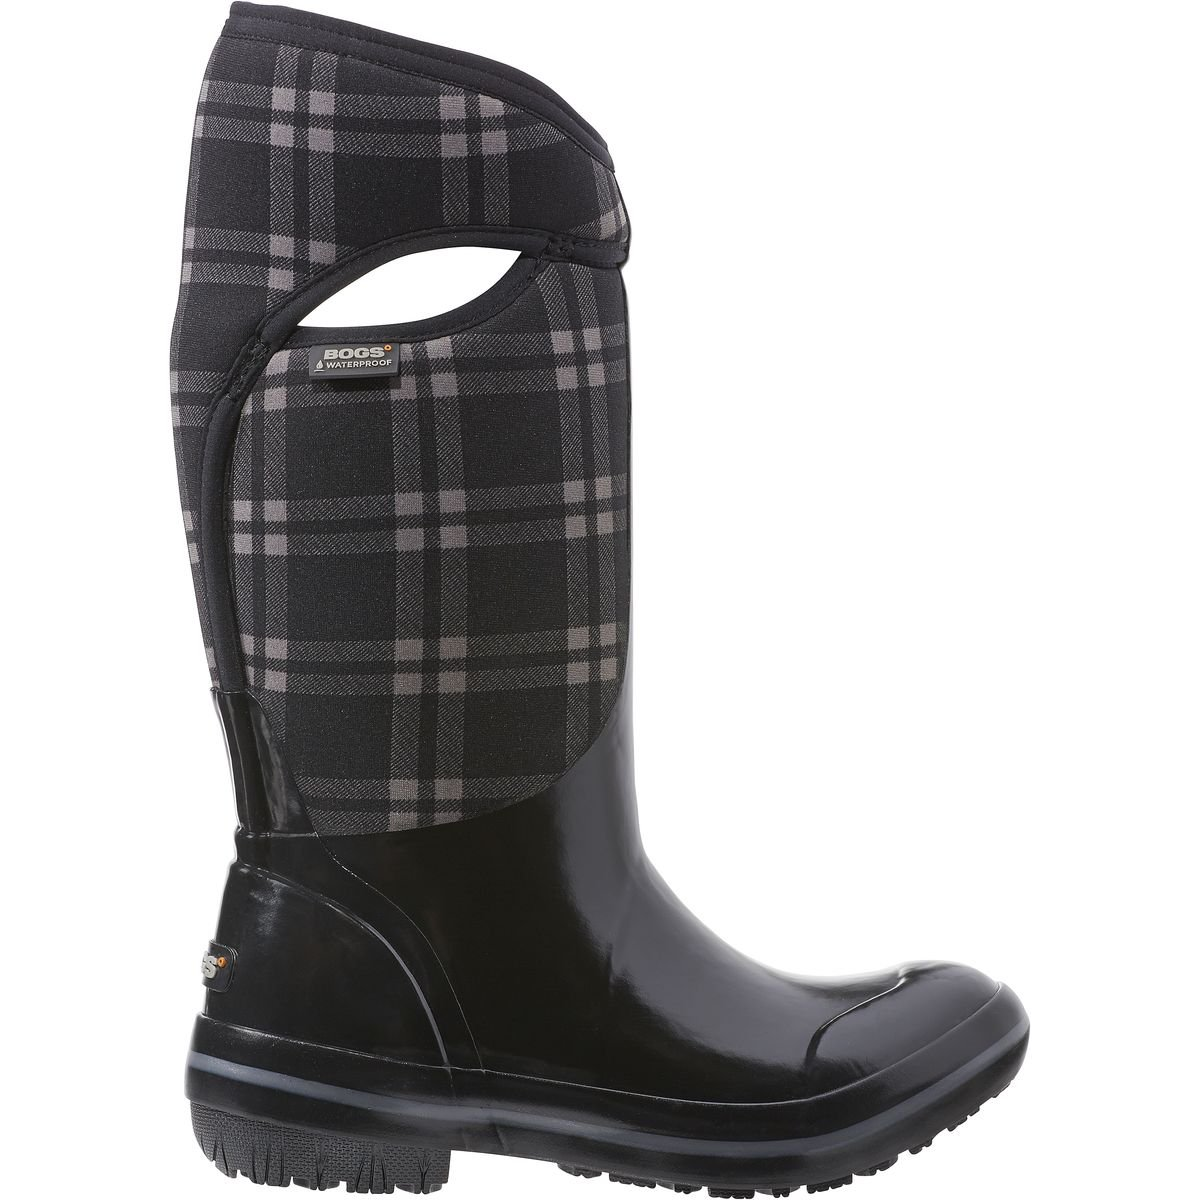 Bogs Women's Plimsoll Plaid Tall Waterproof Insulated Boot, Black